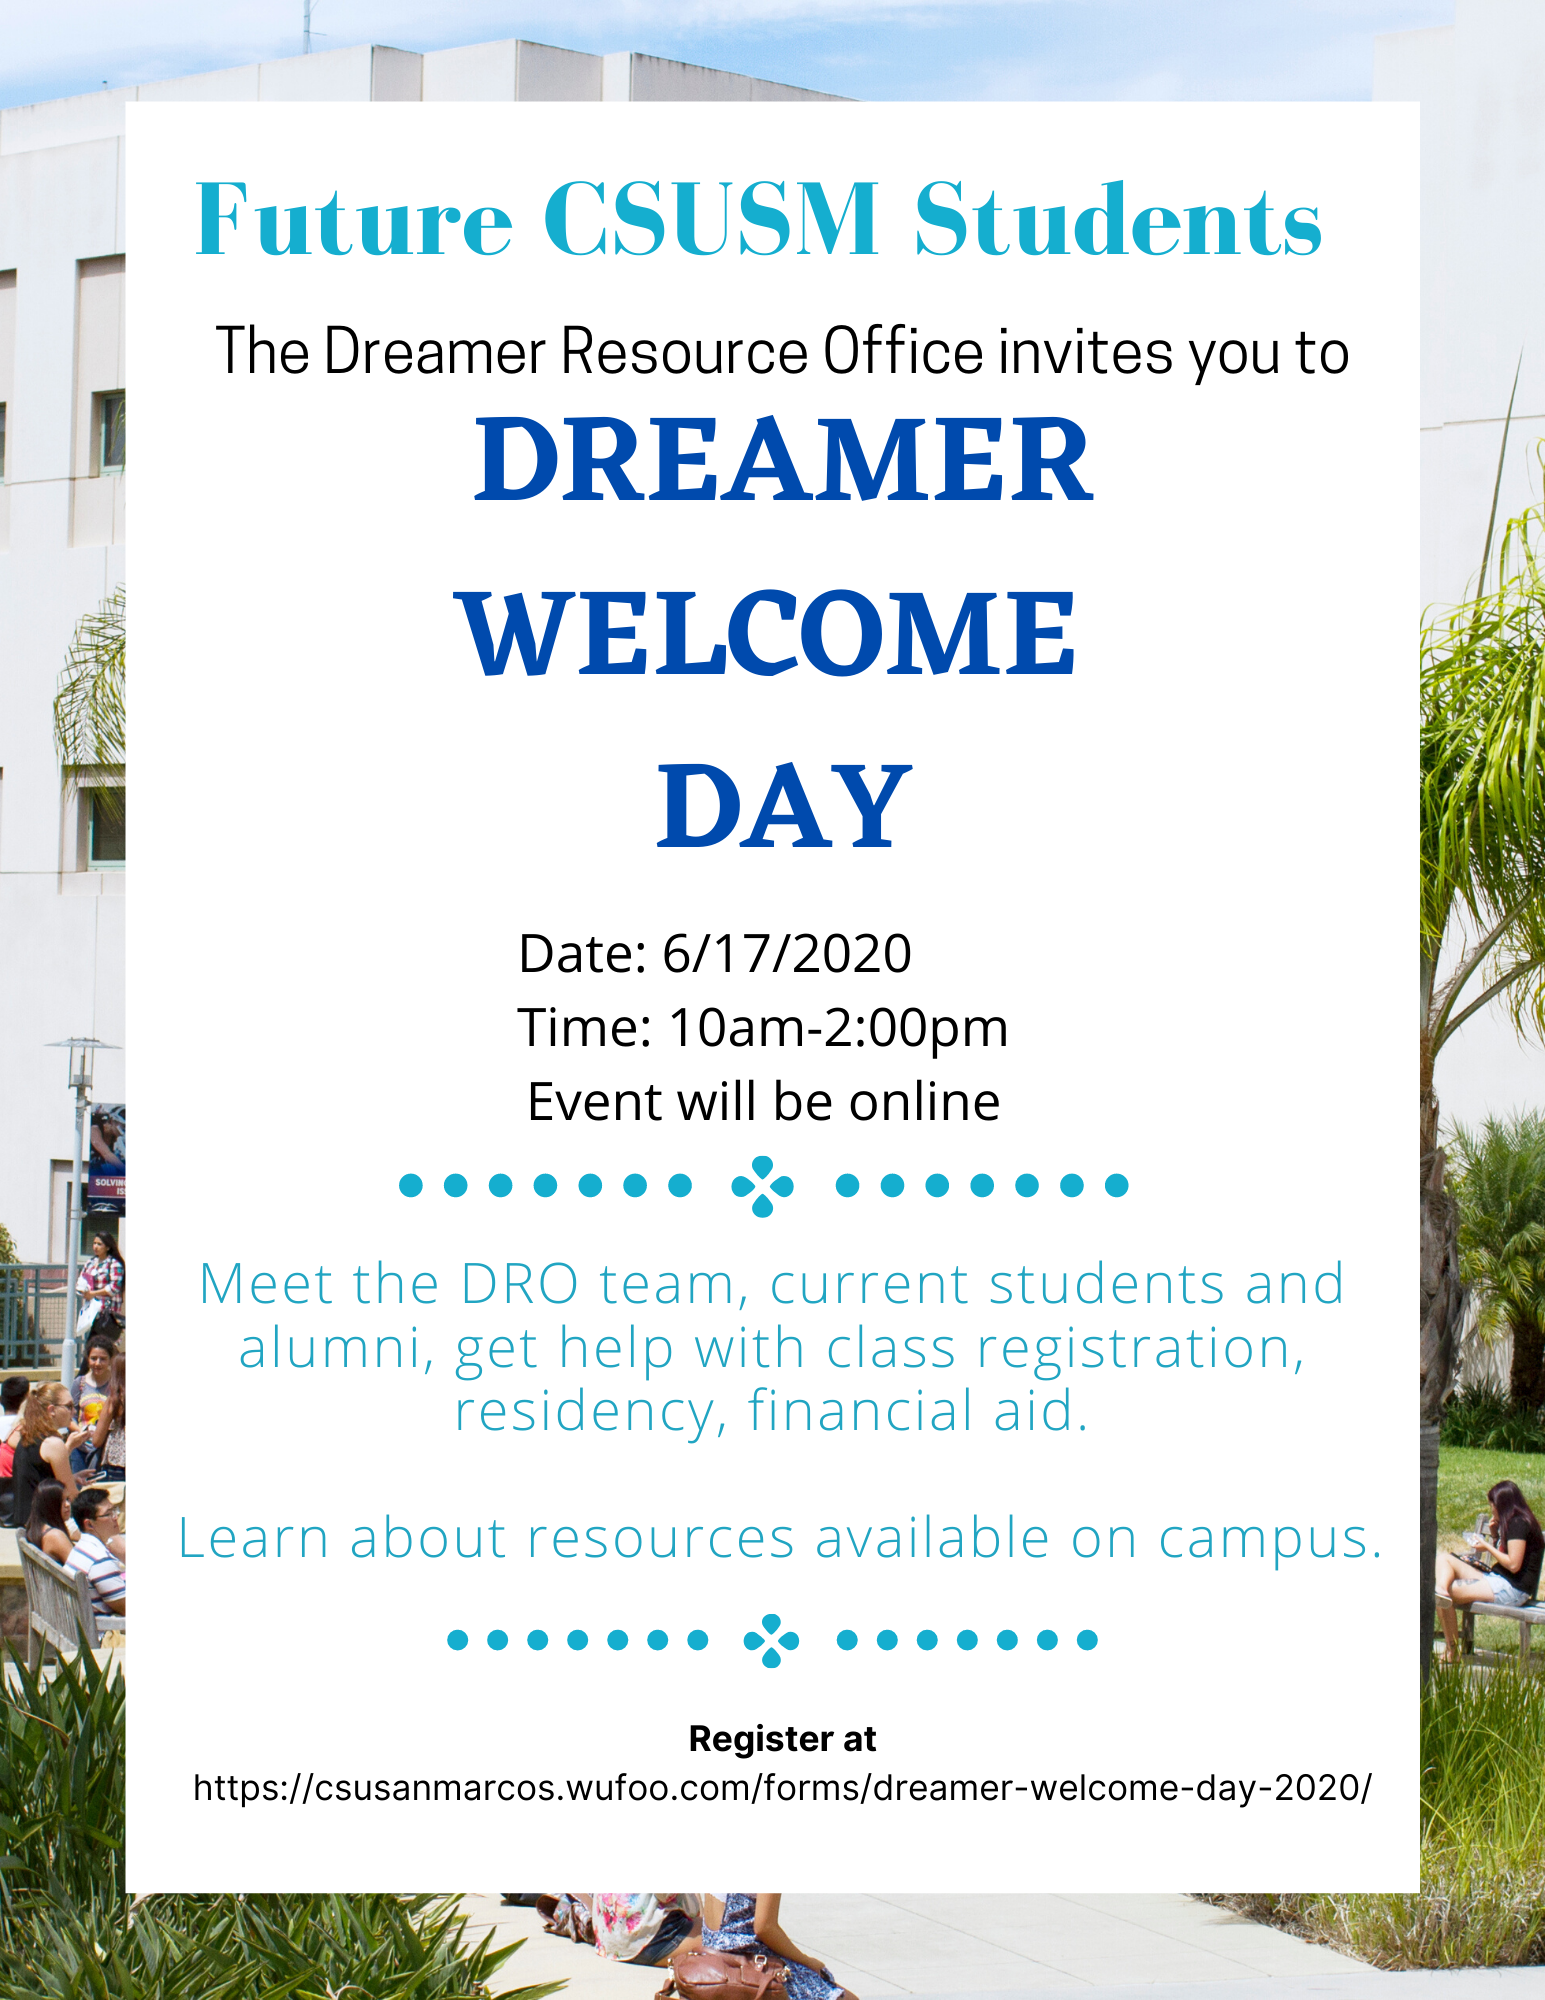 dreamer welcome day 2020 flyer